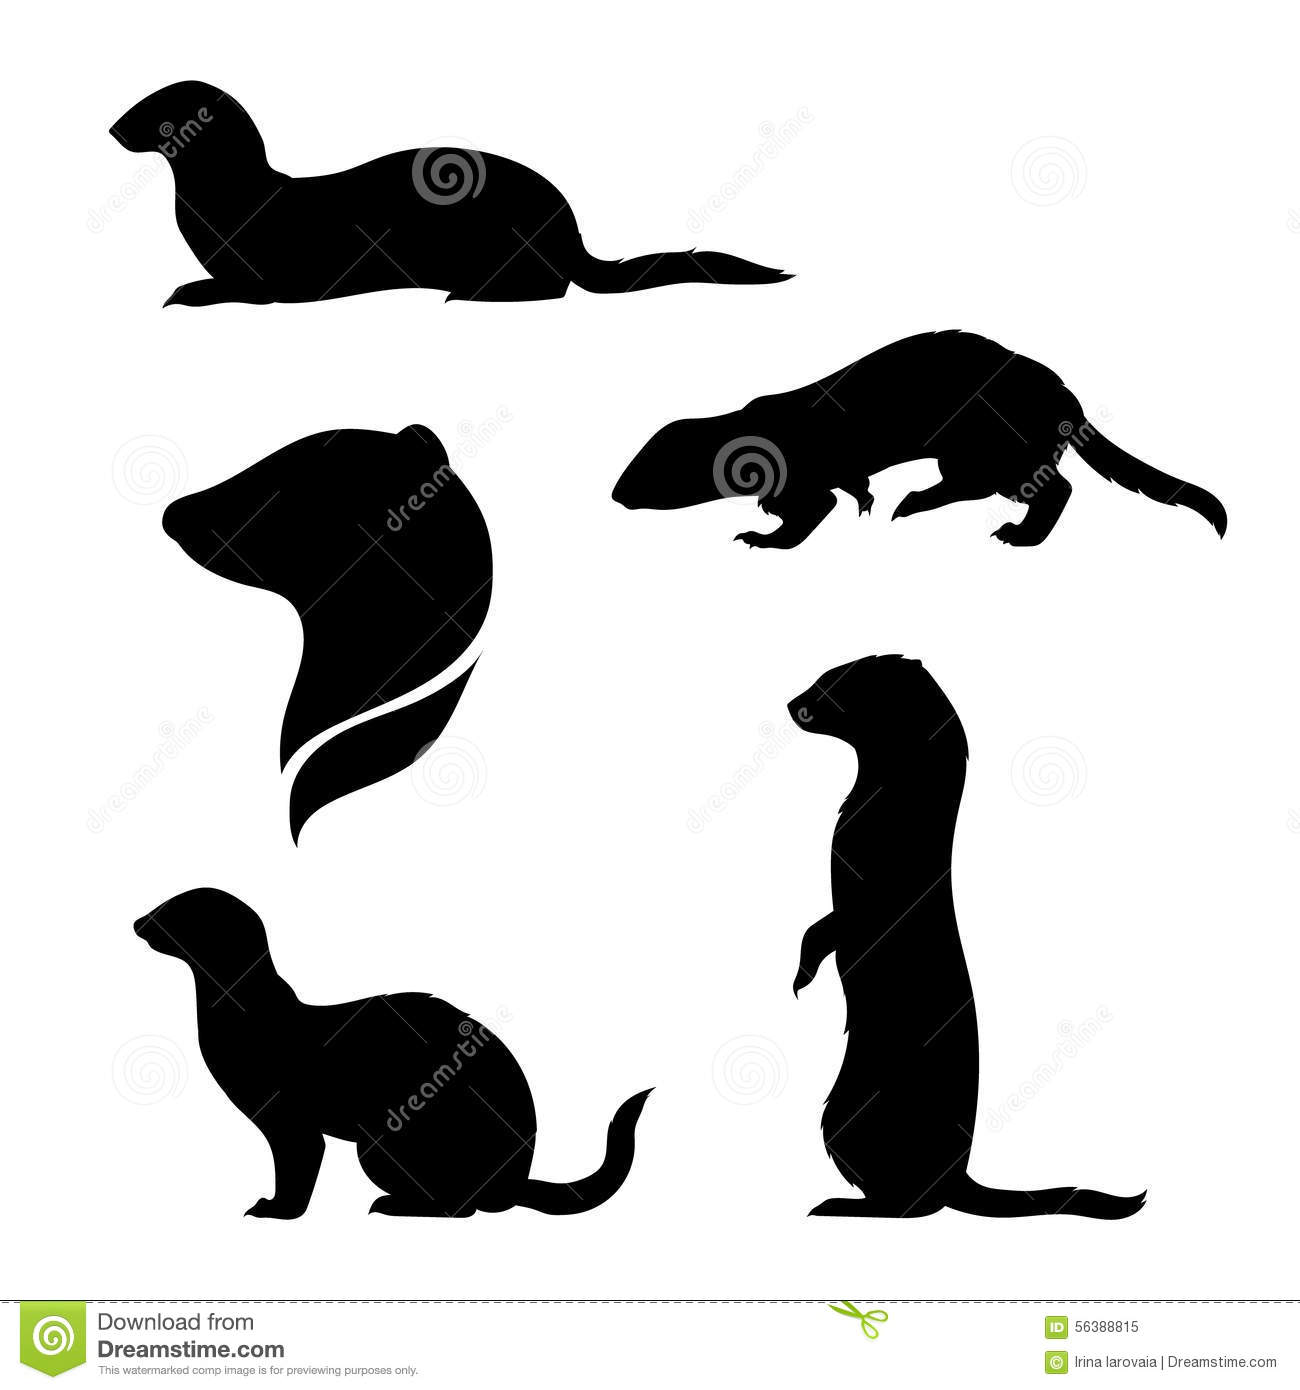 Ferret icons and silhouettes. Set of illustrations in different poses